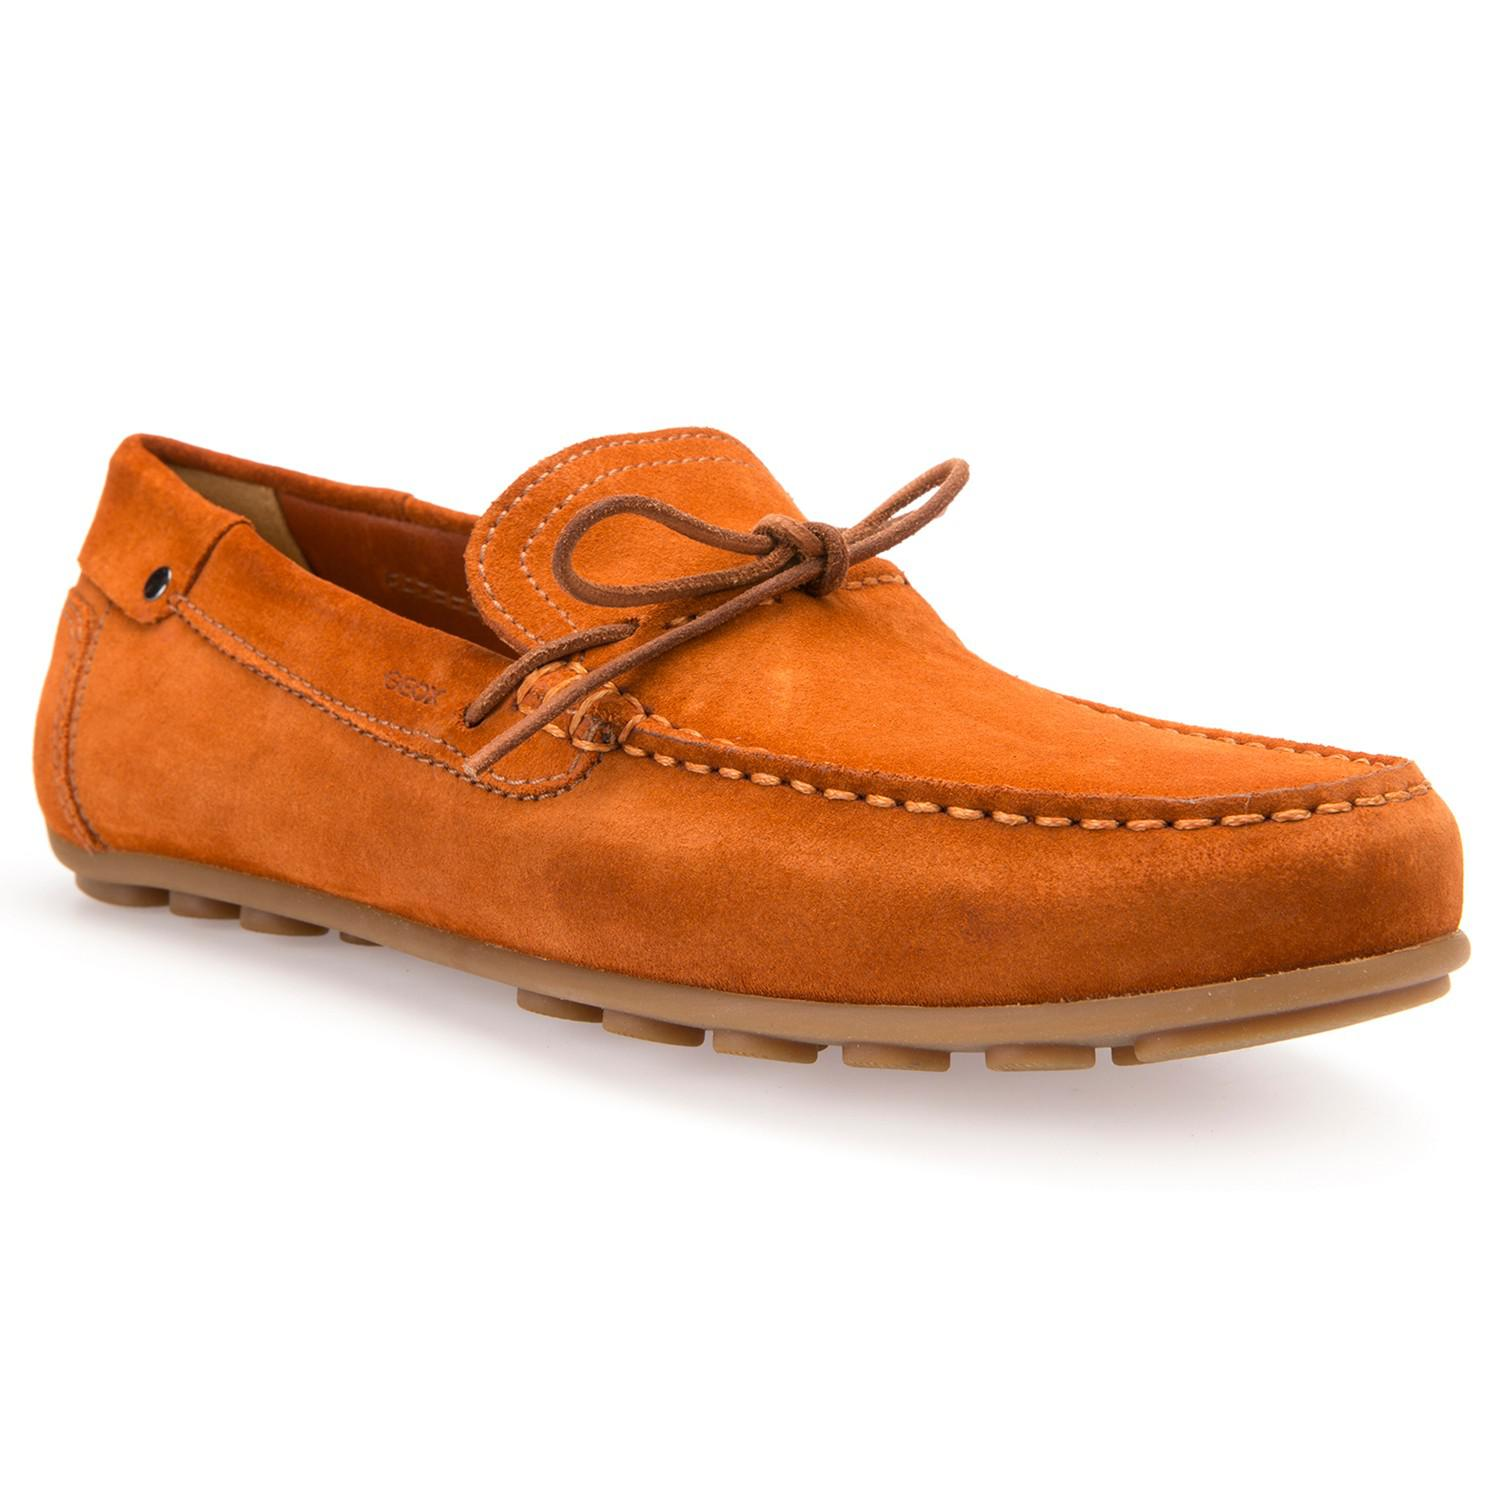 5170b00c174 Geox Giona Suede Driving Shoes in Orange for Men - Lyst